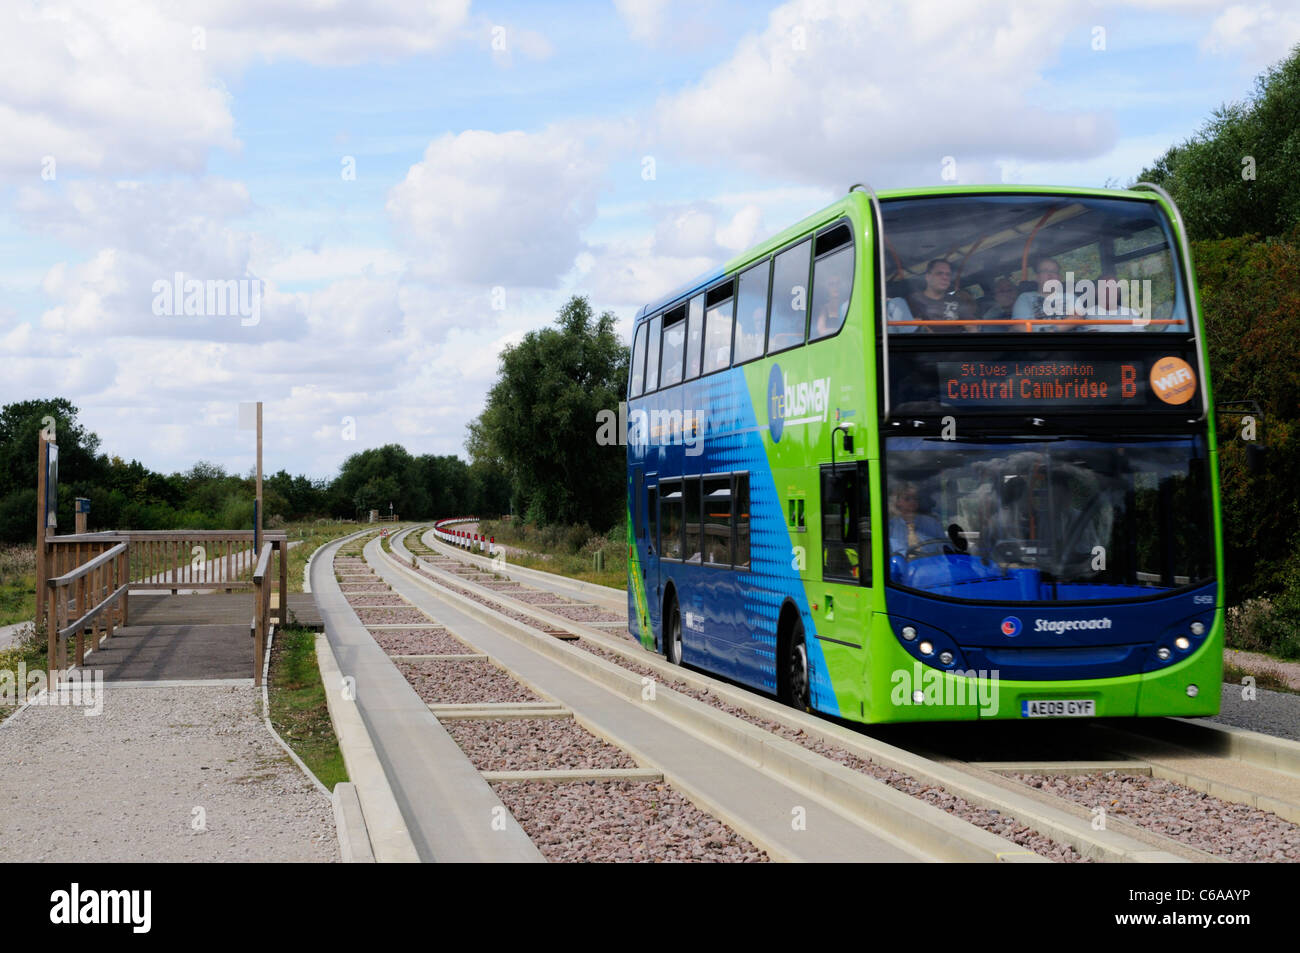 A Bus on The Cambridgeshire Guided Busway at Fen Drayton Lakes RSPB Nature Reserve, Cambridgeshire, England, UK - Stock Image